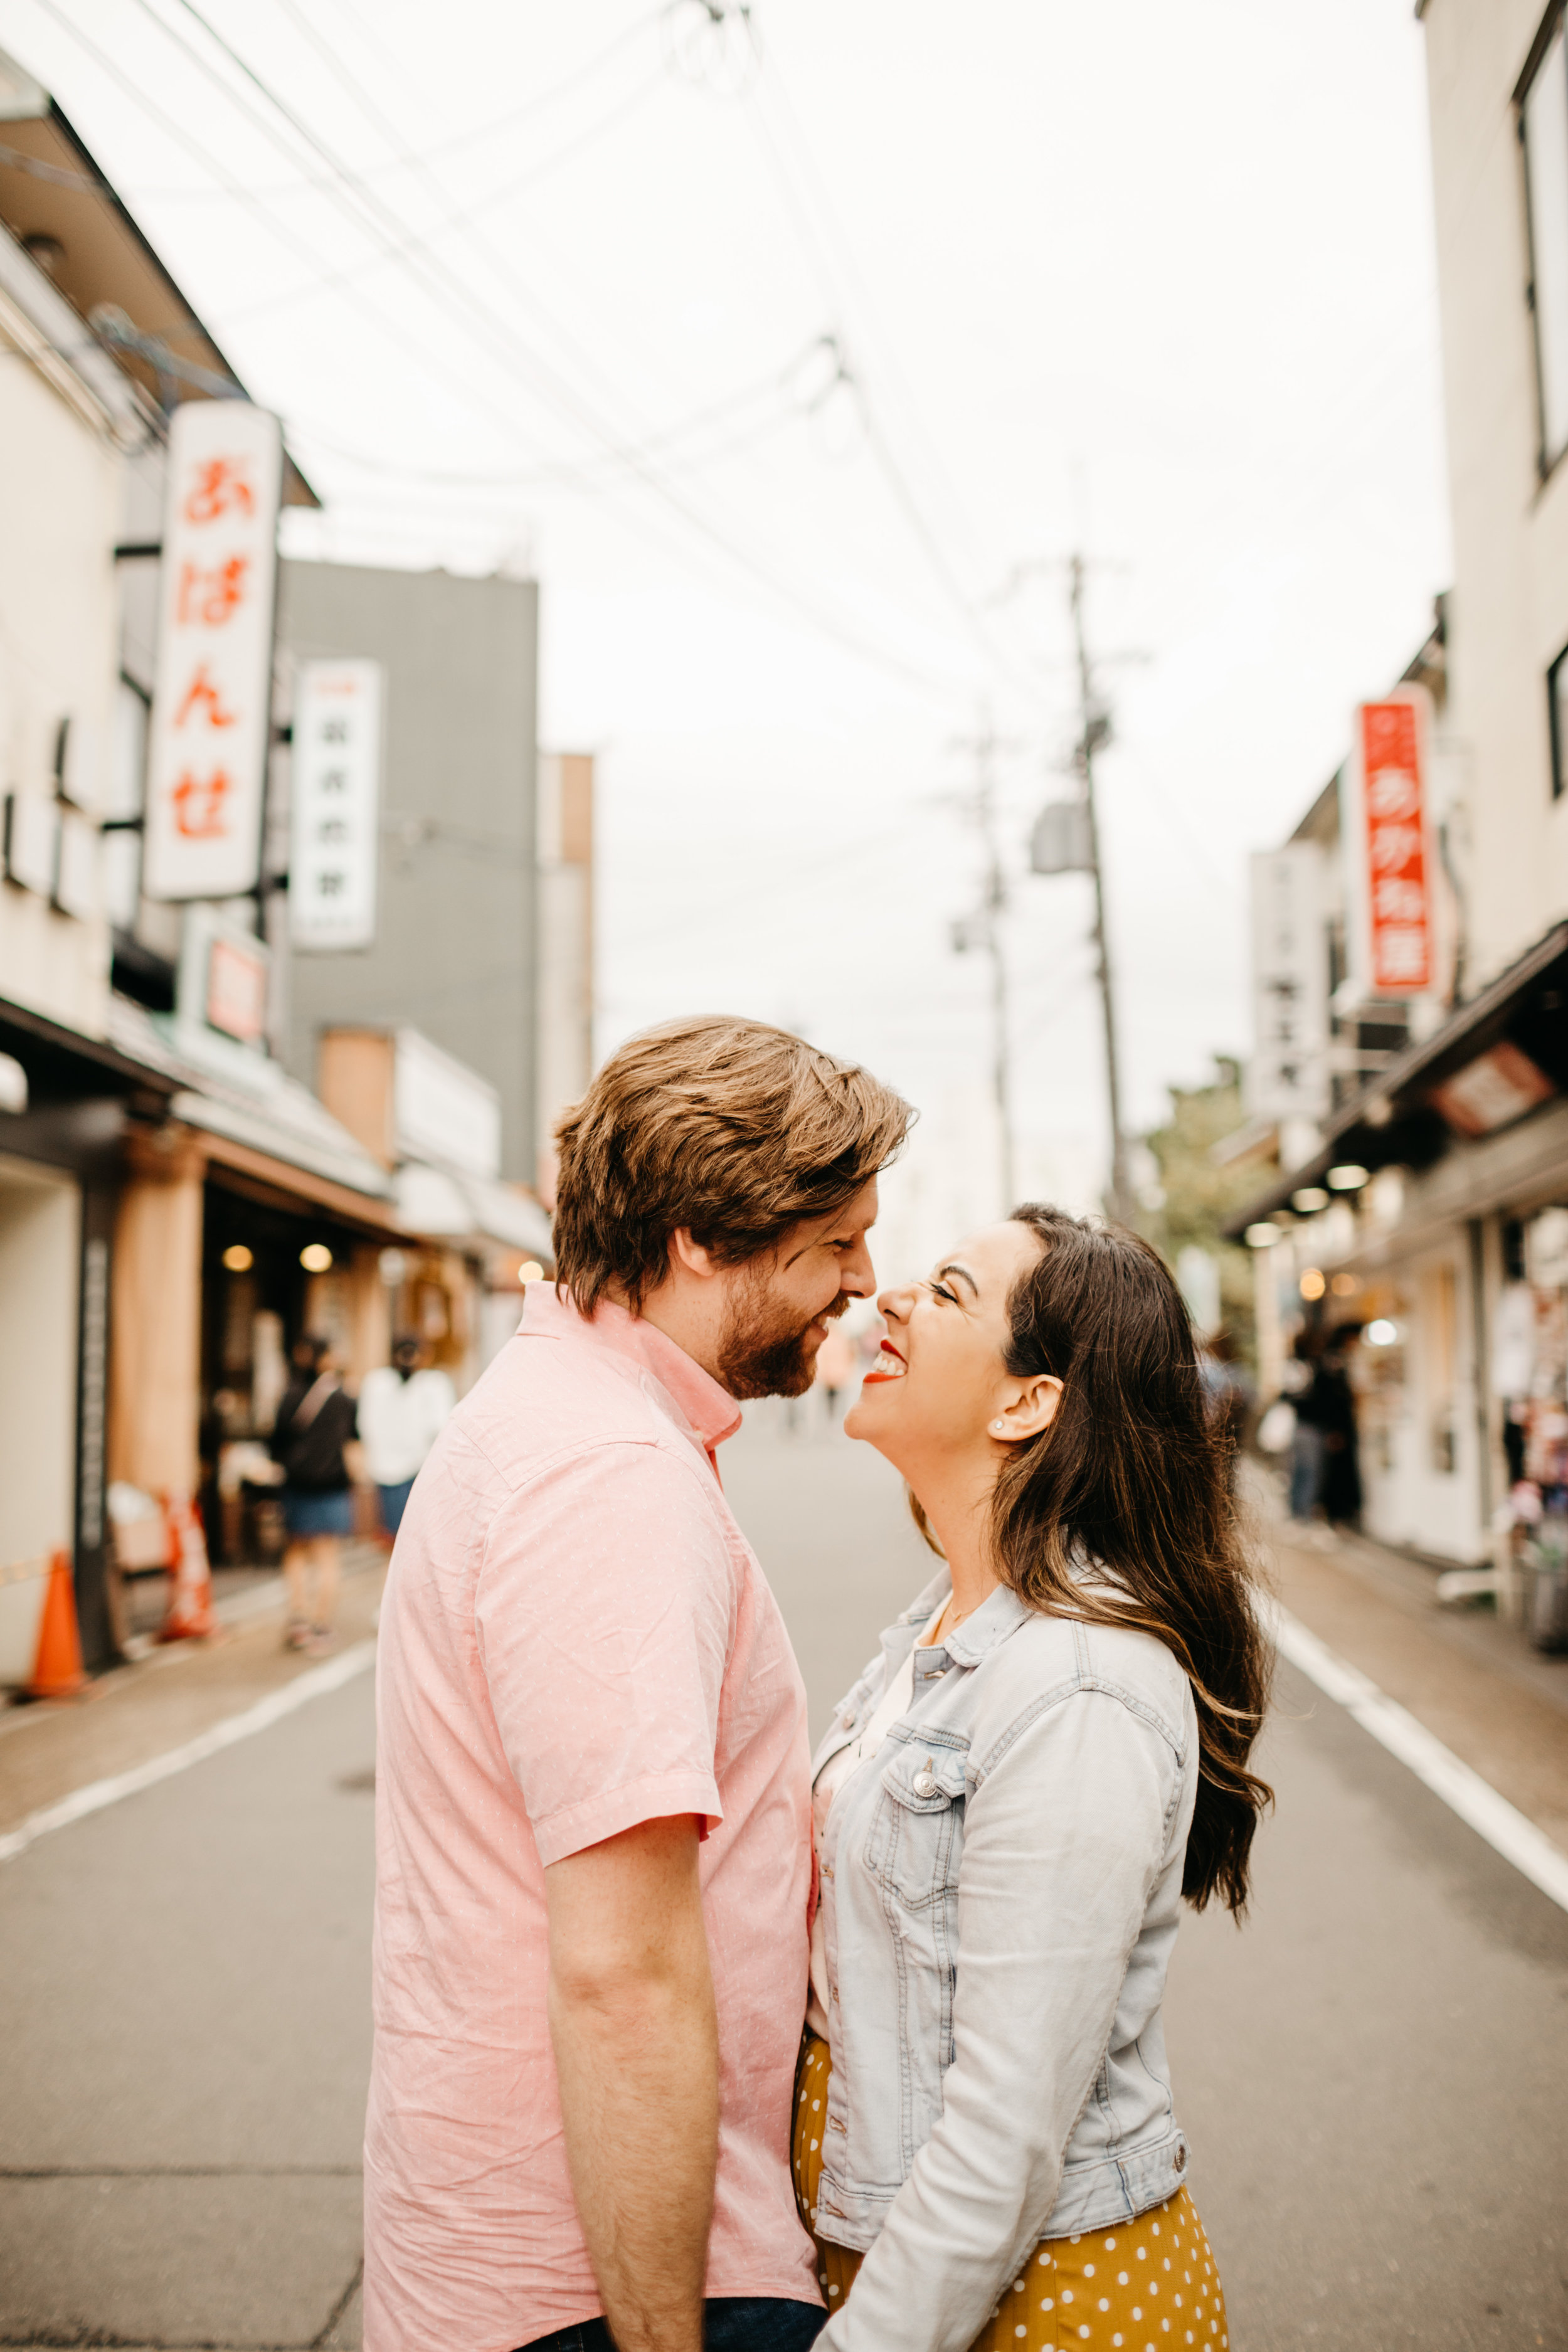 kyoto_couples_pictures_by_samantha_look-125.jpg